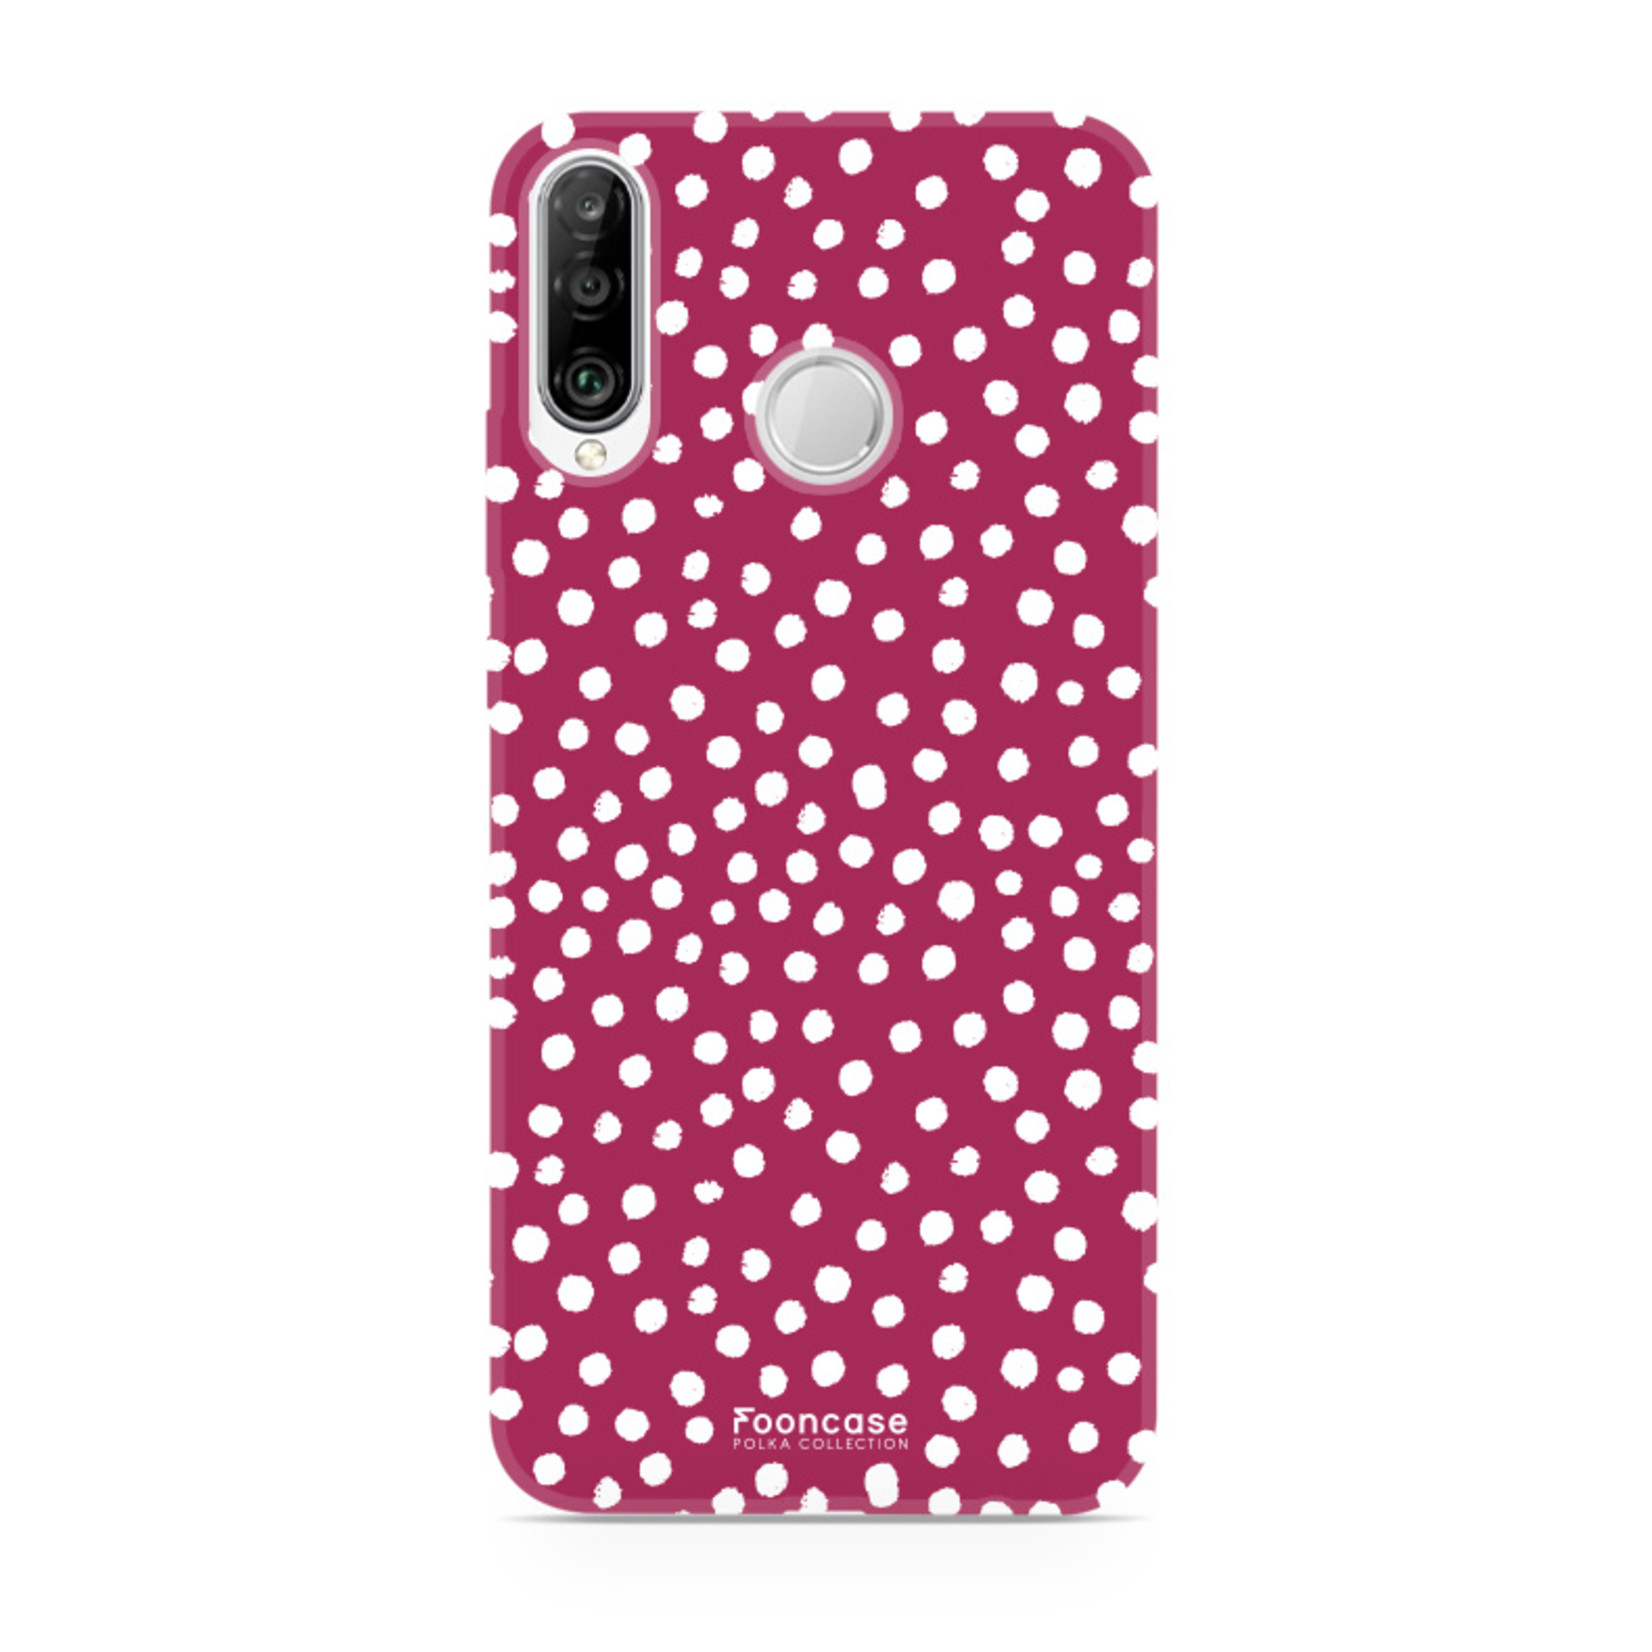 FOONCASE Huawei P30 Lite - POLKA COLLECTION / Rot